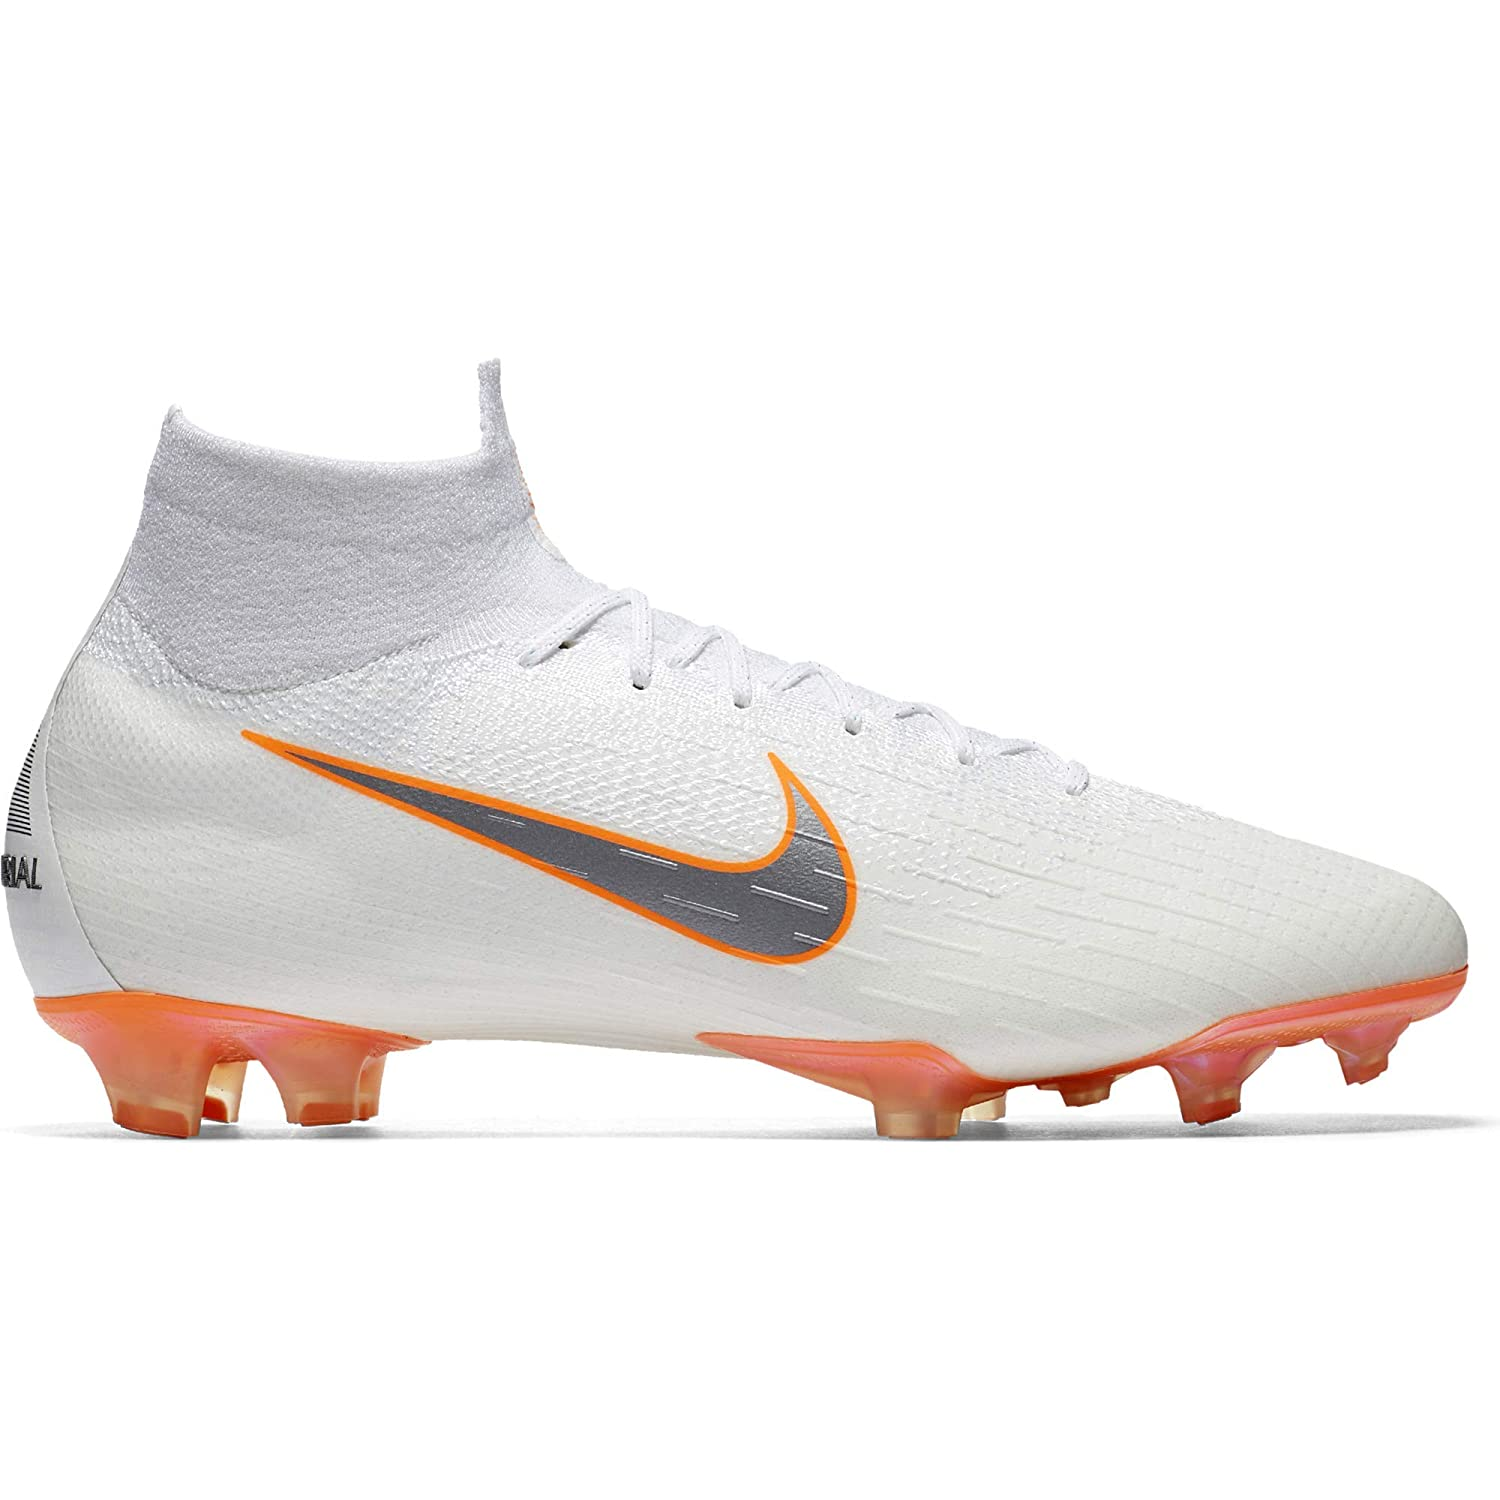 online store 34d48 dcb8c Amazon.com  Nike Mens Superfly 6 Elite FG Firm-Ground Football Boot (10 M  US) White  Soccer